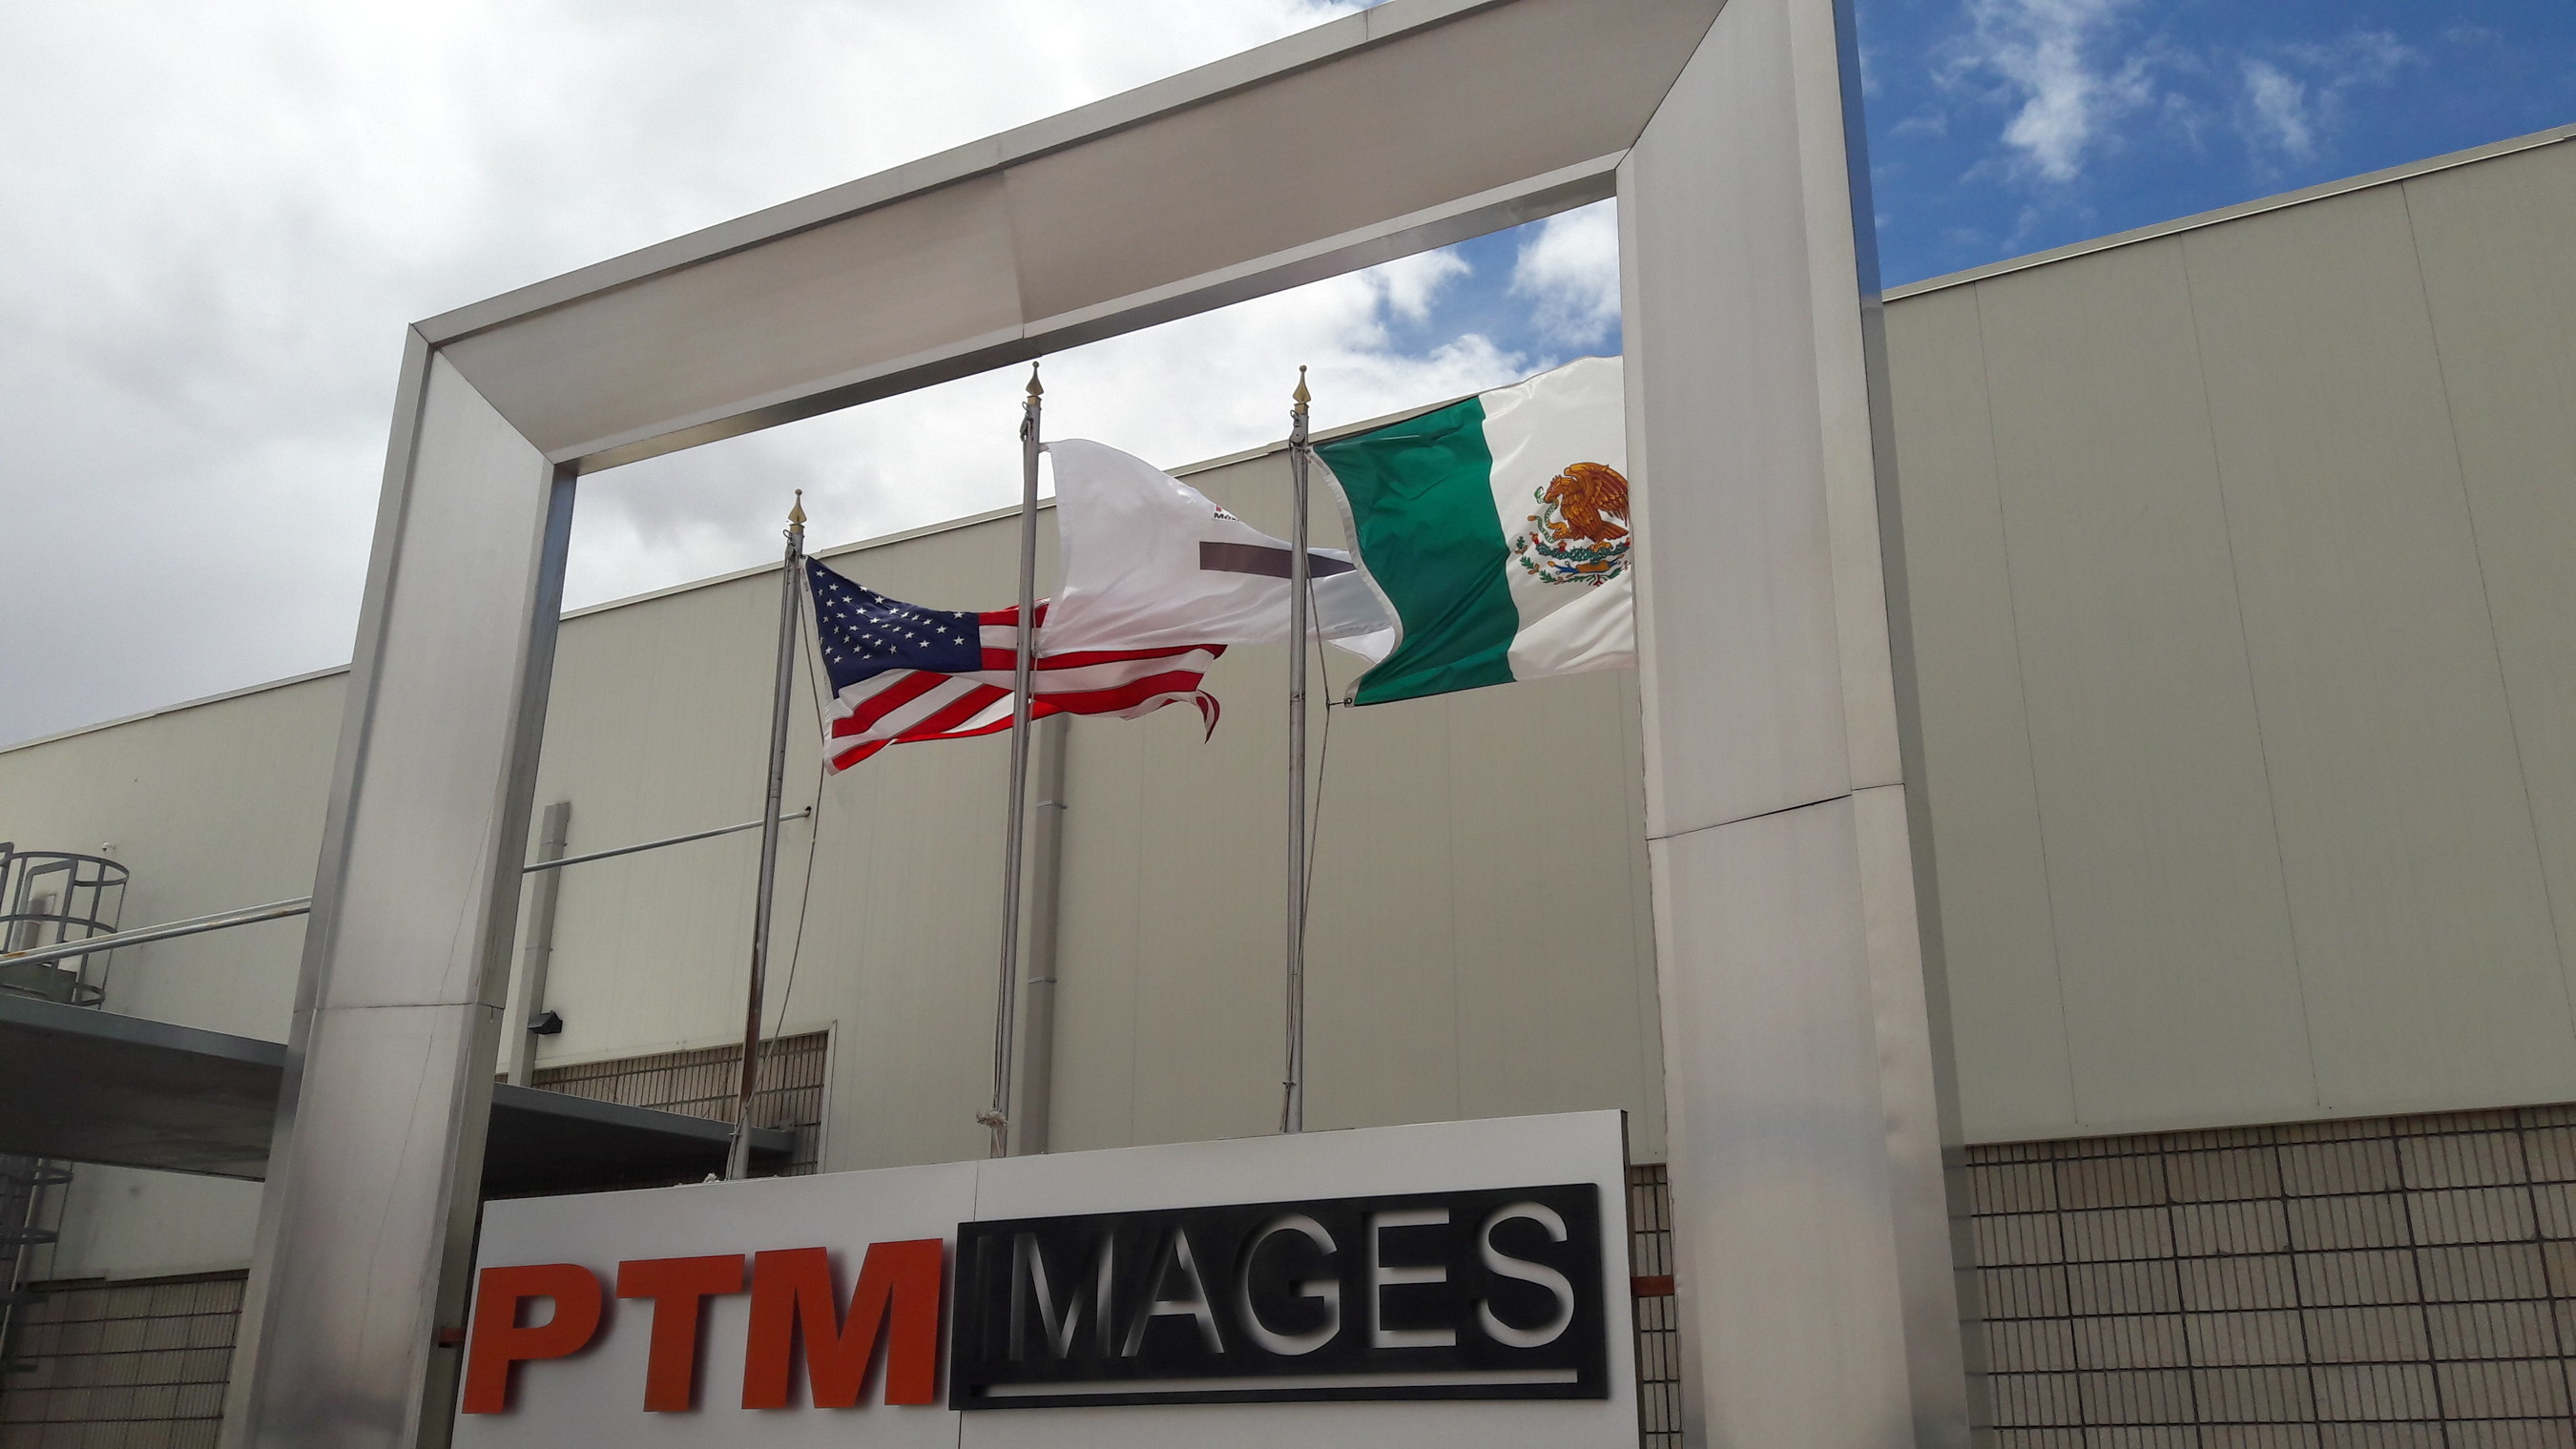 PTM IMAGES' new facility and its proximity to the United States allows the Company to deliver merchandise across the border within 45 minutes. PTM is located just 20 minutes south of Yuma, Arizona. PTM is an example of the benefits NAFTA provides by creating jobs on both sides of the border.